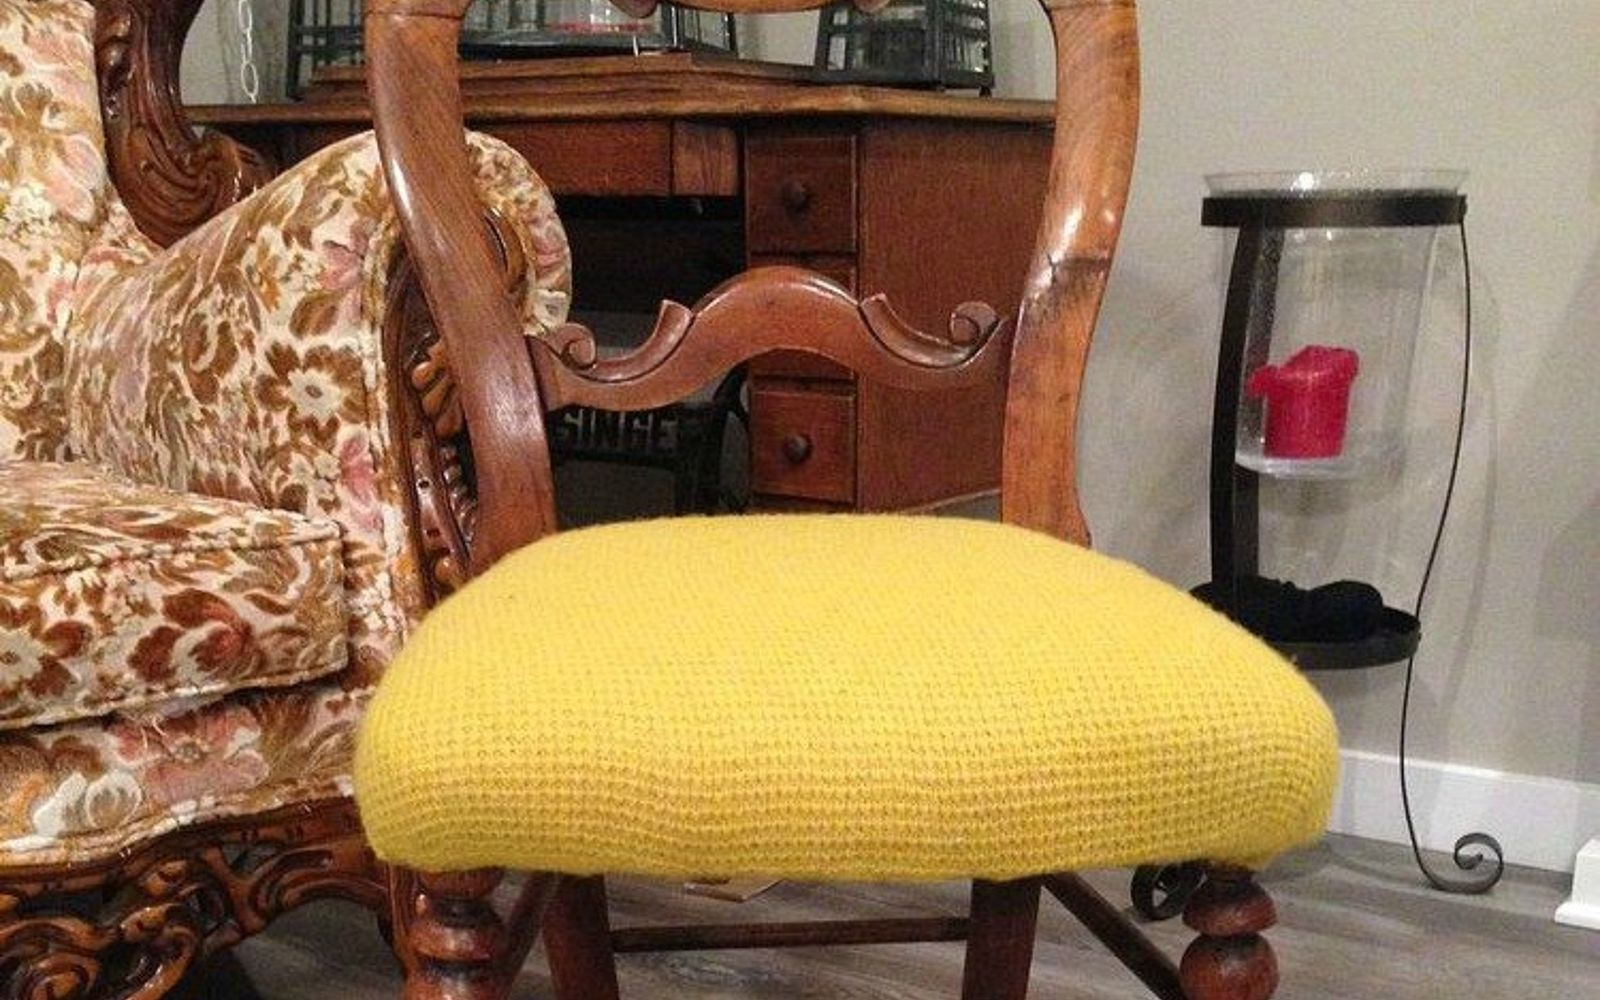 s 15 reasons not to trash your ugly worn out sweaters, crafts, repurposing upcycling, Use a shrunken shrug to update a ratty chair